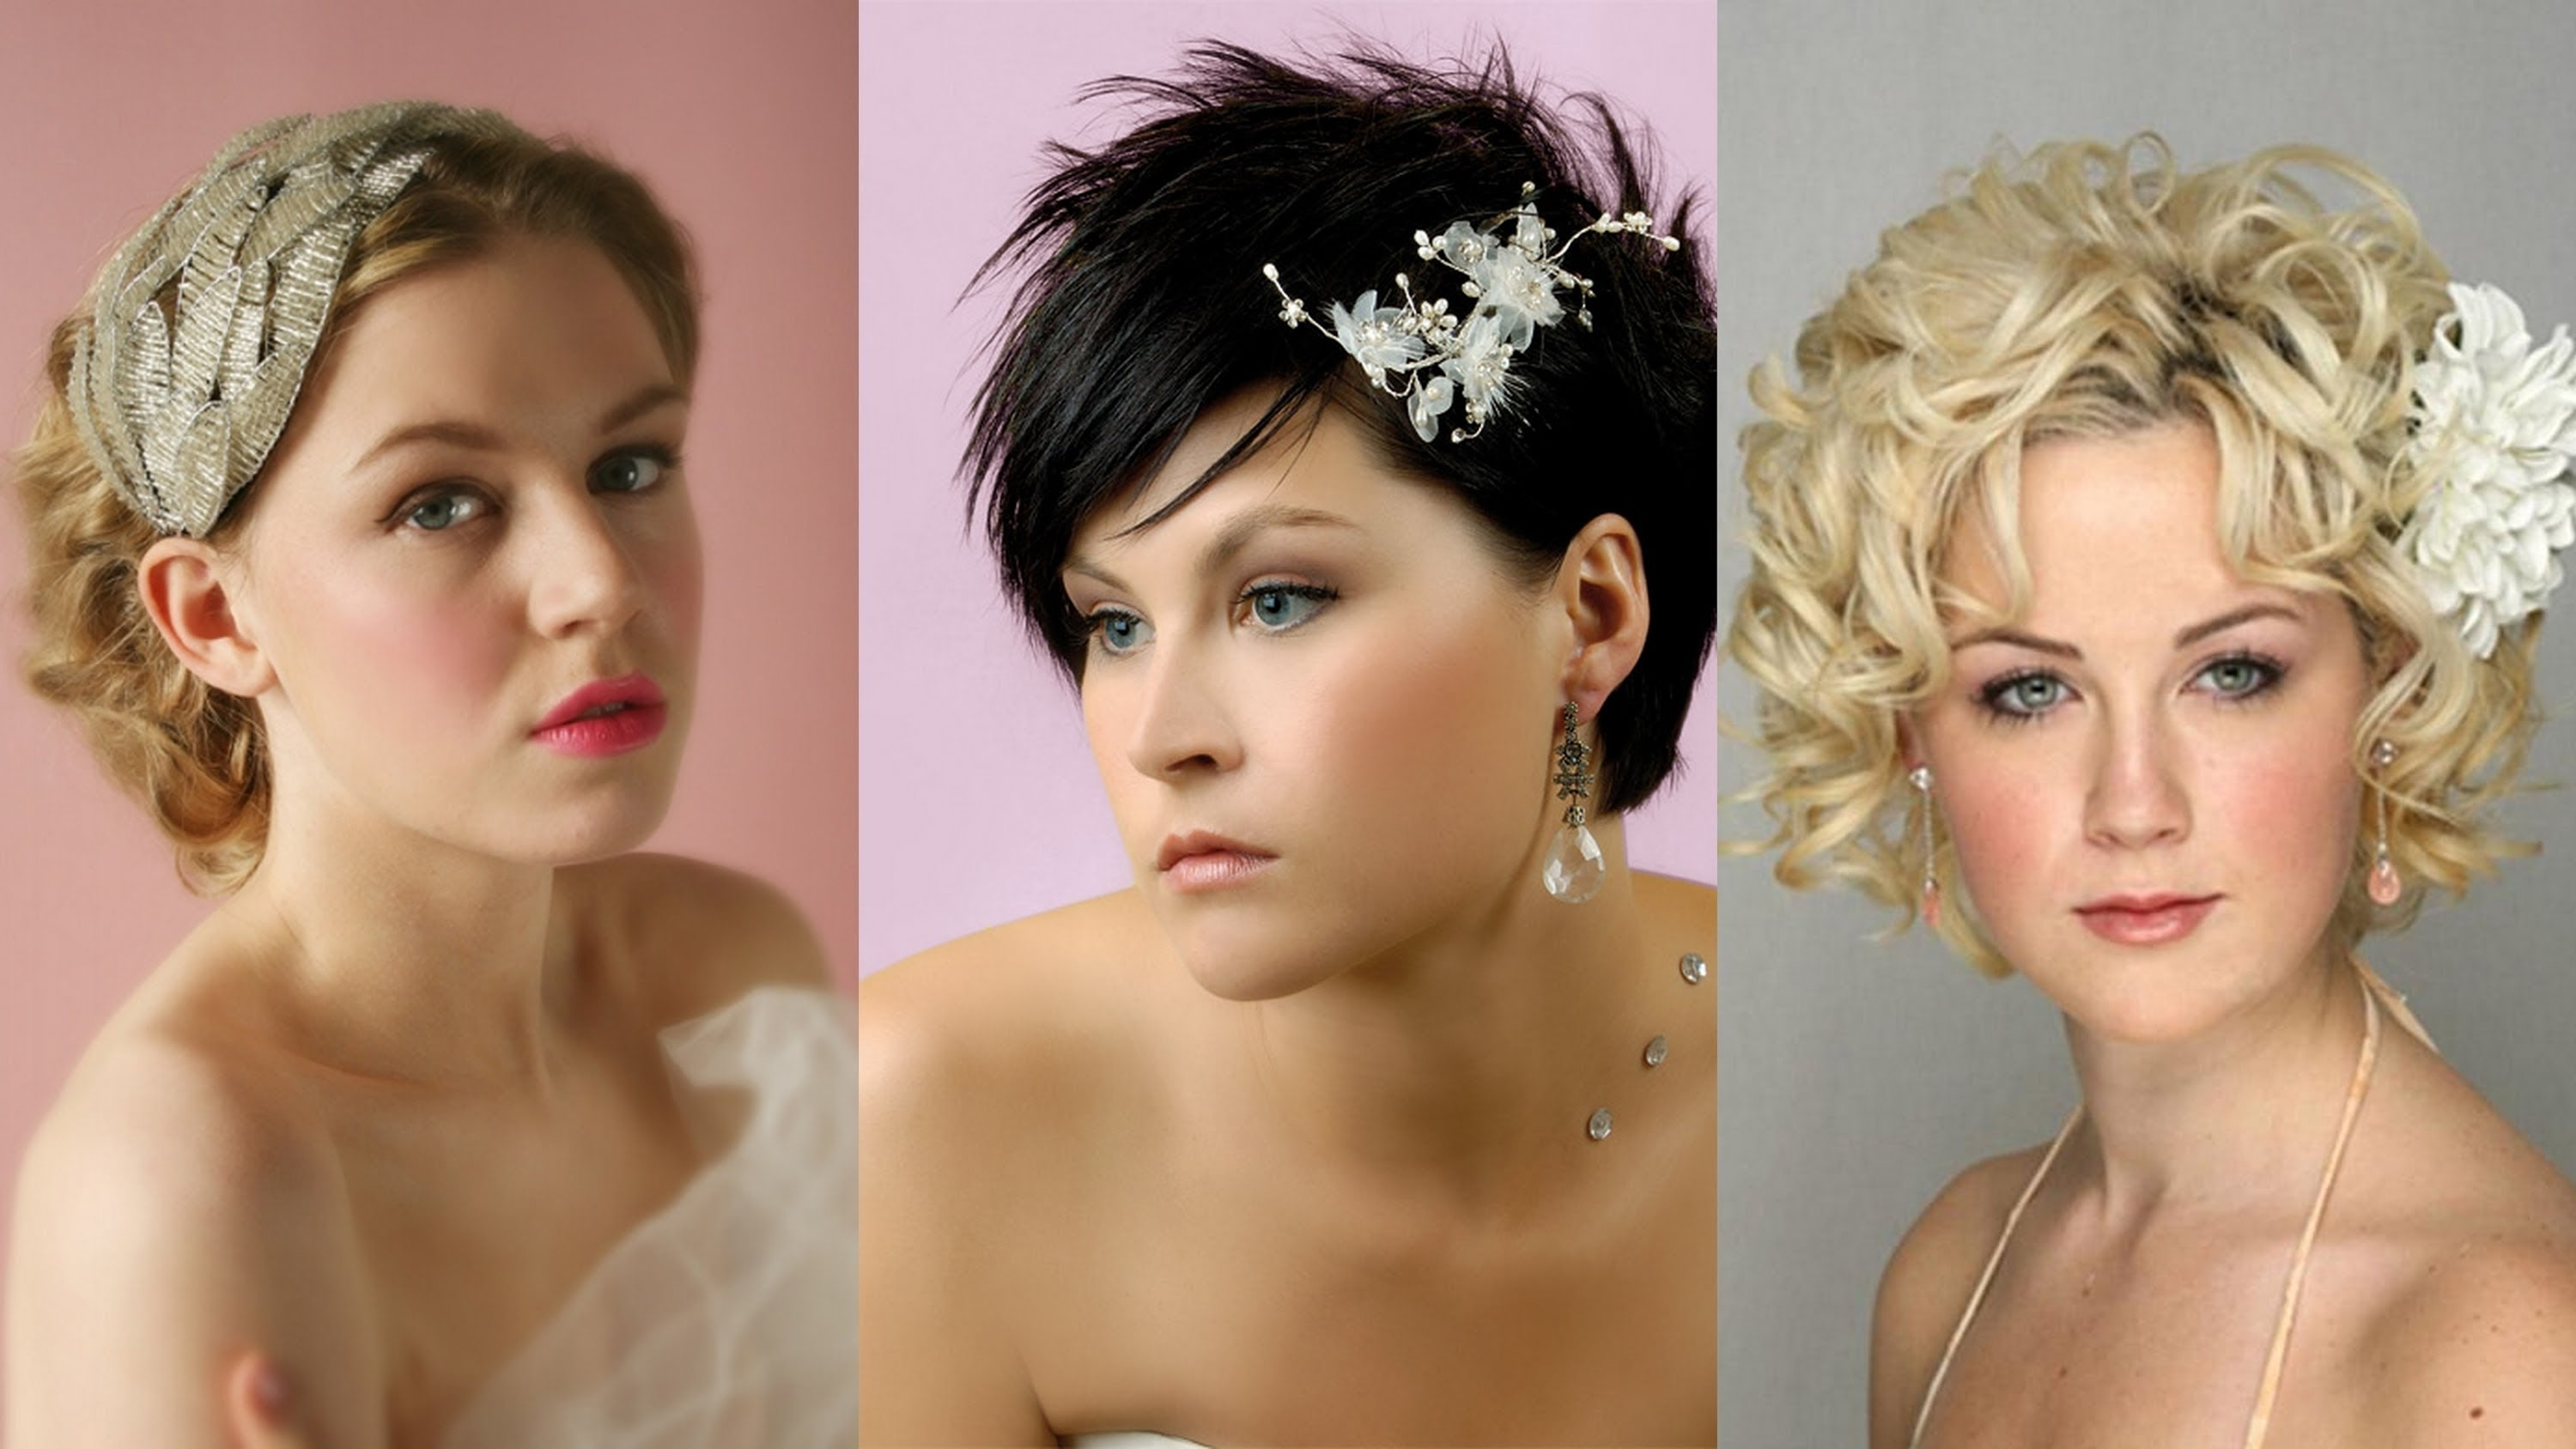 Awesome Wedding Hairstyles For Short Brown Hair Of Trends And Intended For Popular Wedding Hairstyles For Short Brown Hair (Gallery 15 of 15)